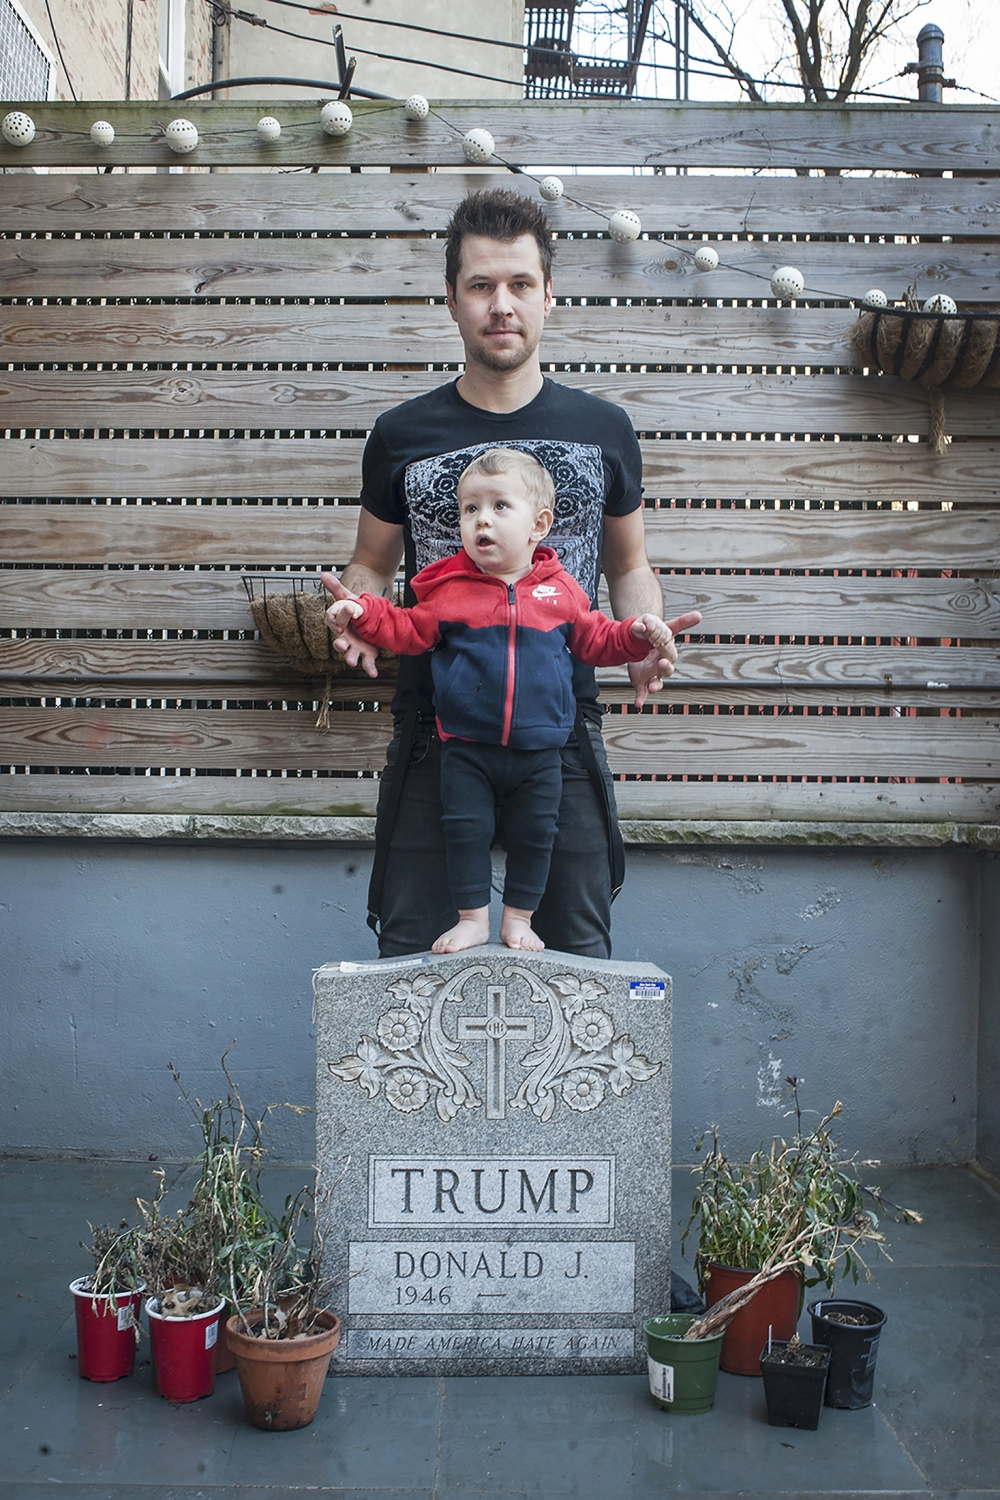 "Brian Whiteley is an artist known for a tombstone featuring Donald Trump's name. It appeared on Easter Sunday, 2016, in the middle of Central Park to massive media attention and eventual police involvement. The idea came during Trump's opening campaign speech. ""I made the epitaph as a way to get him to reflect on what he's doing and possibly make a change,"" he said. It was also a reflection of Trump's name which often appears on his properties. The tombstone is made from Vermont granite and weighs around 500 pounds. It states, ""Donald Trump, 1946 ~, Make America Hate Again."" Whiteley worked with a Trump-supporting carver at Supreme Memorials in Park Slope to create it. Once it was installed in Central Park around 5A.M., ""It was all over the news, it just kind of blew up. I was on the New York Times crime section, then on the arts section the next day,"" he said. The police confiscated the tombstone. Then the secret service began investigating Whiteley. ""They interrogated me, took fingerprints and photographs, mental health records, which books I was reading, if I owned a gun, if I knew martial arts,"" he said. Thankfully, there is no death date assigned on the tombstone, which he believes may have constituted a threat. ""My mother voted for Trump. I have a hard time talking with her now. We're talking about basic moral issues. Human rights. Repealing Obamacare, which you had your grandchildren under. This directly affects you and you're not comprehending this,"" said Whiteley. ""Trump is not an example for my son or anyone to look up to."""